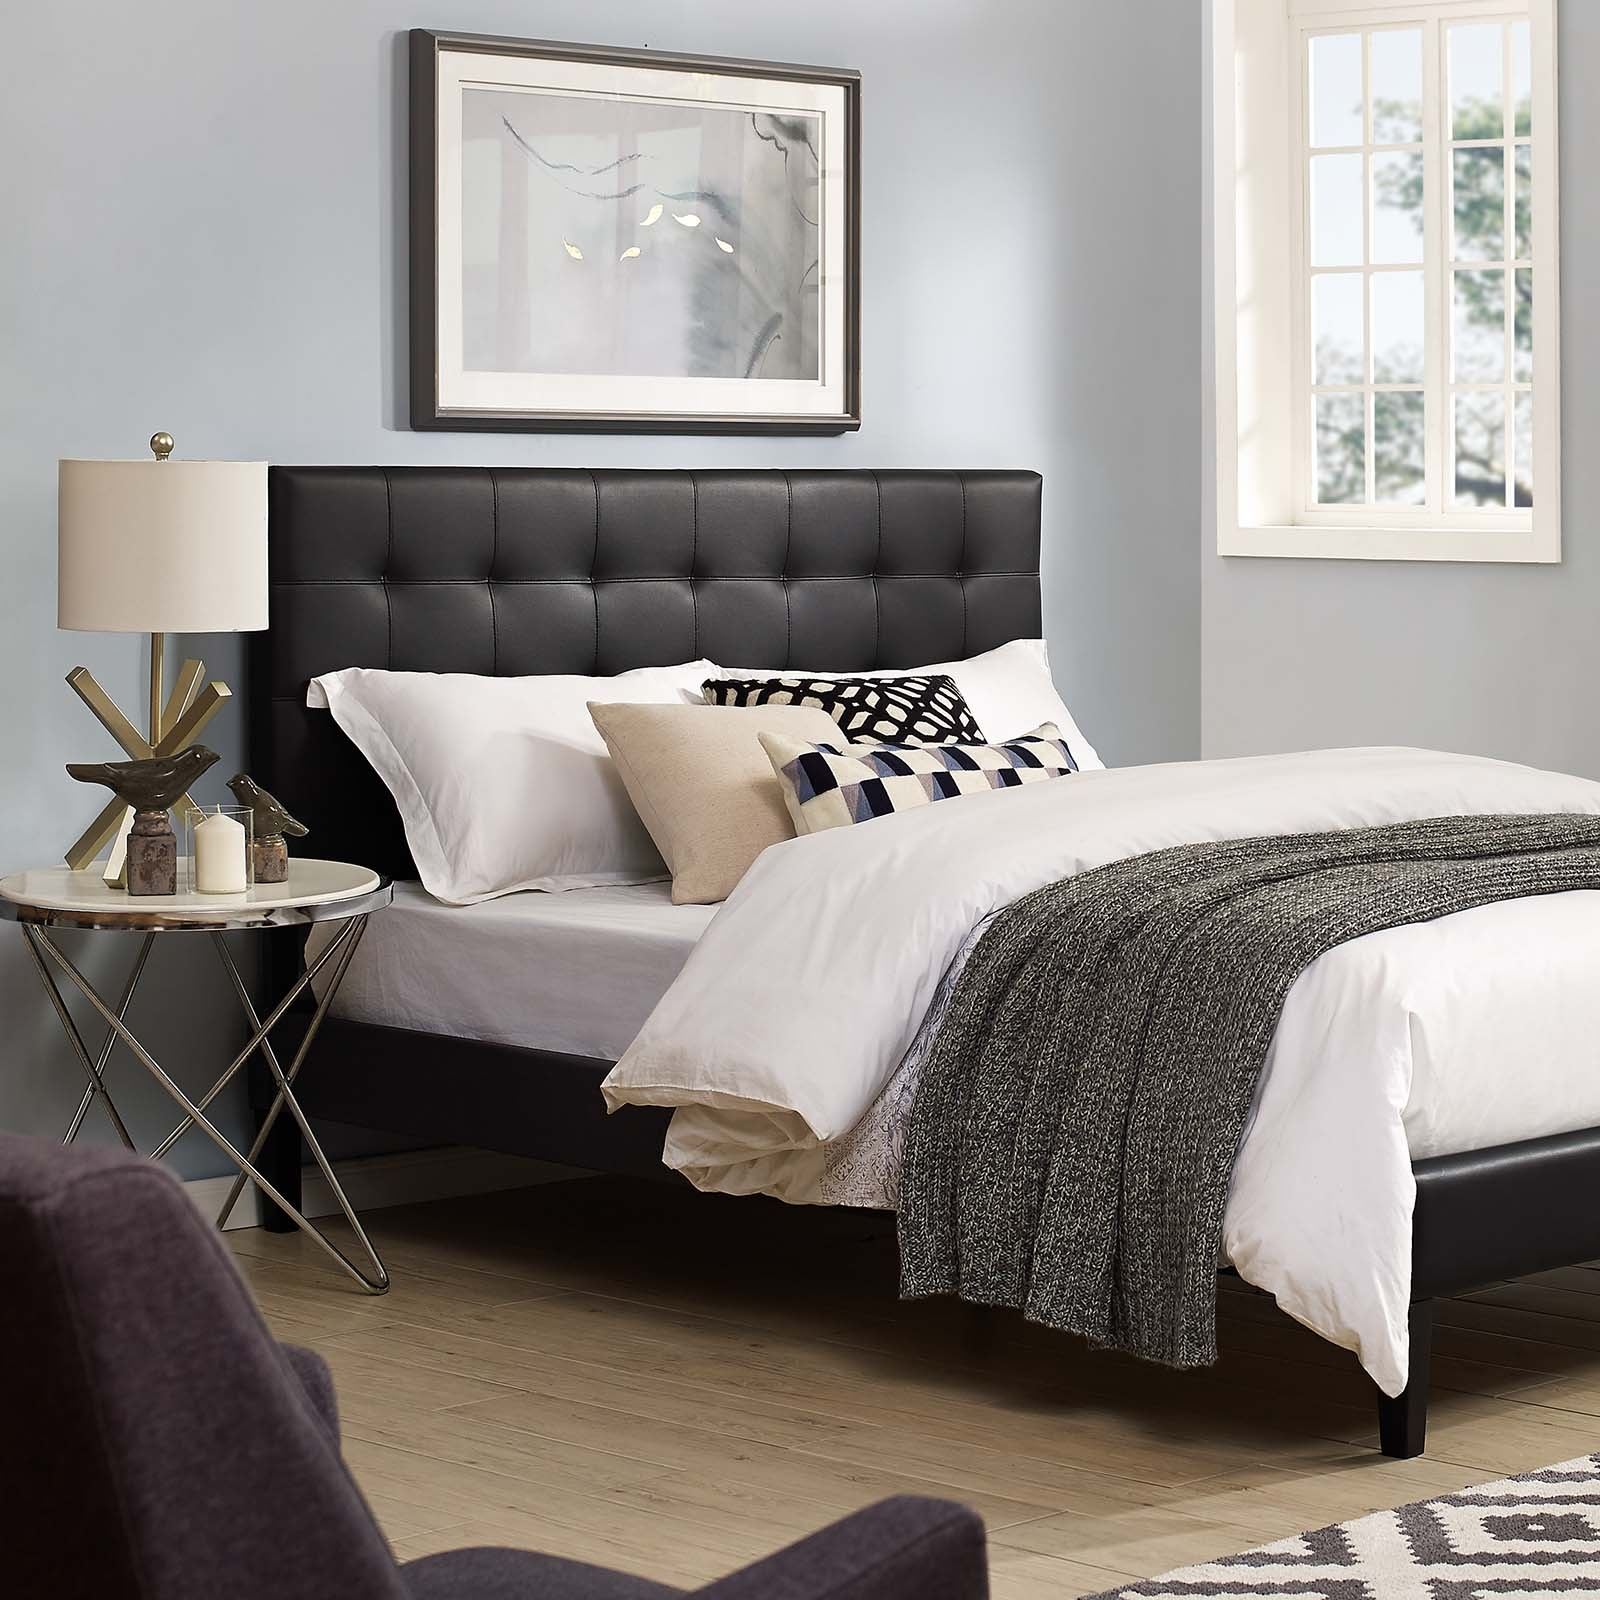 Paisley Tufted King and California King Upholstered Faux Leather Headboard in Black